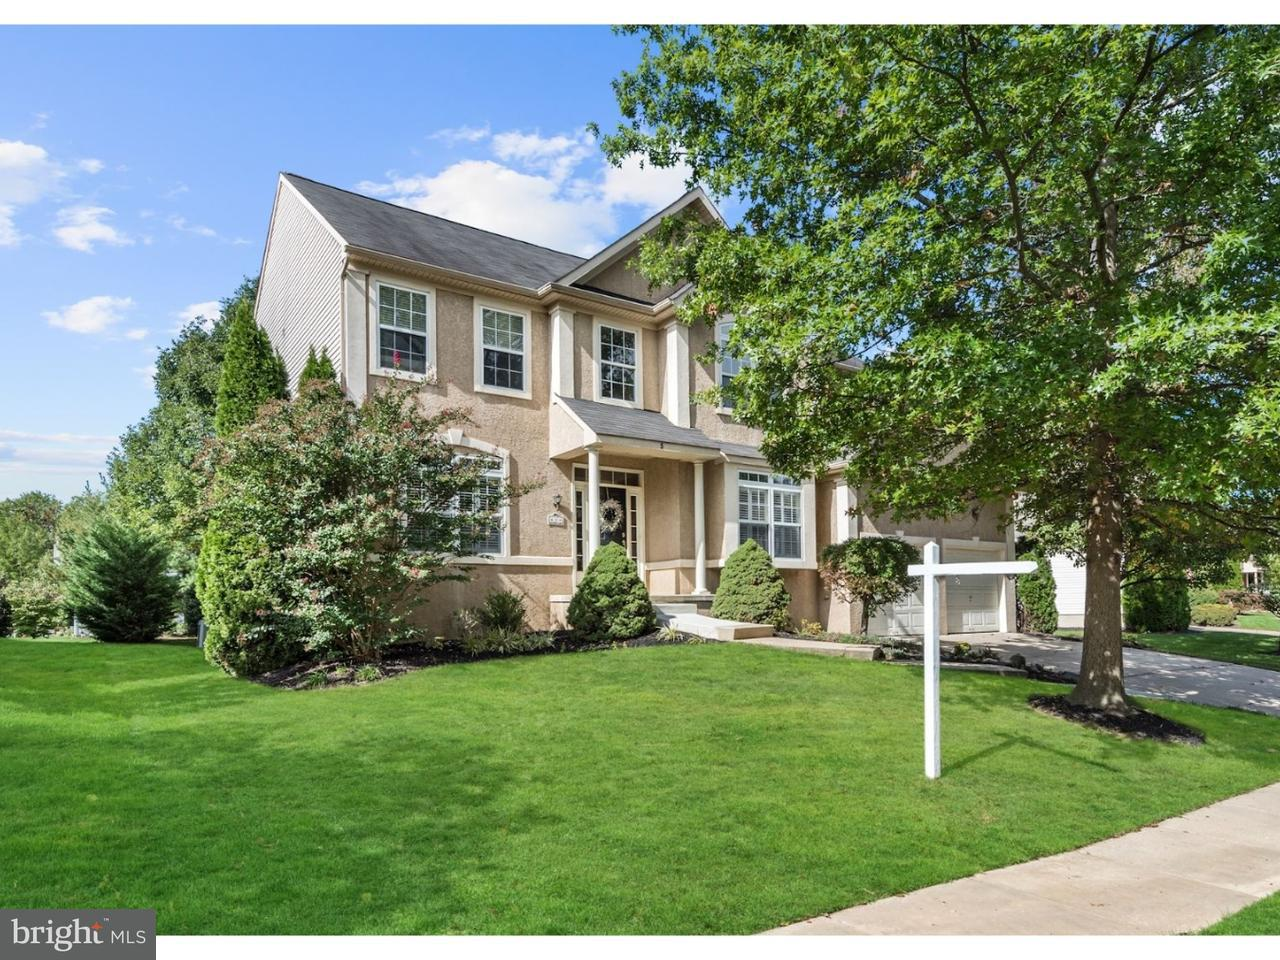 Single Family Home for Sale at 5 ASCOT Drive Cinnaminson Township, New Jersey 08077 United States